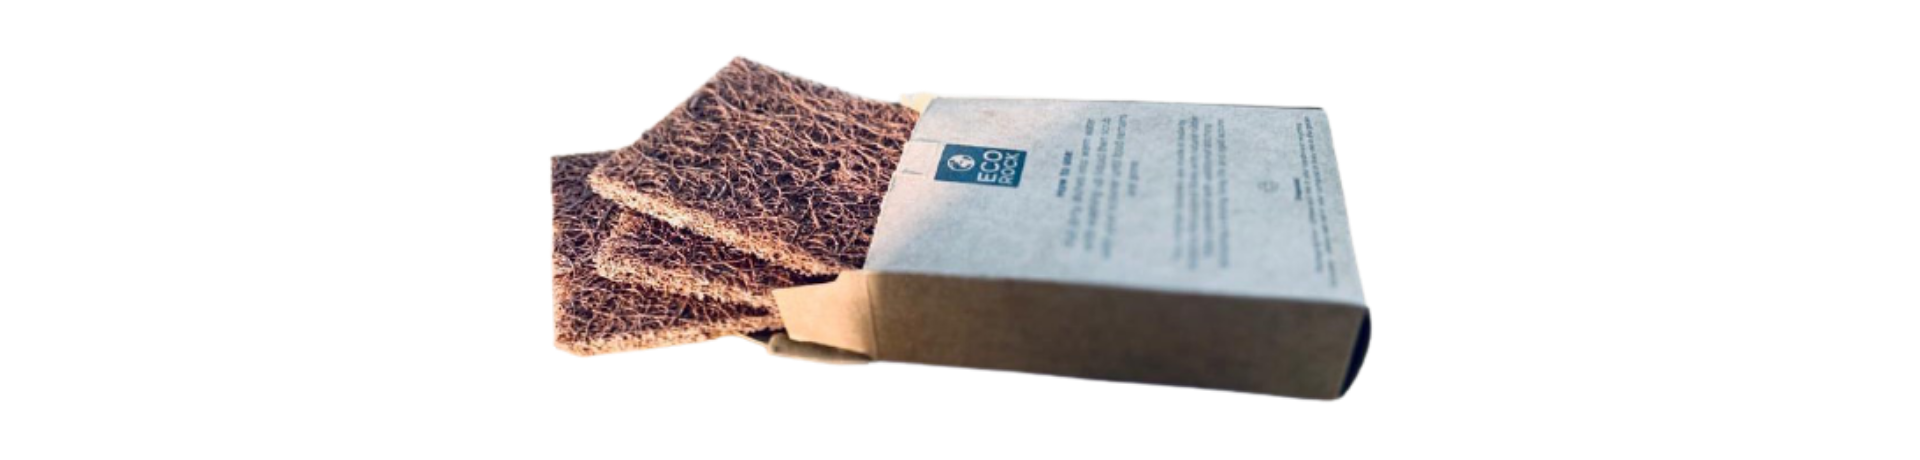 Three compostable coconut scourers shown in cardboard packaging.